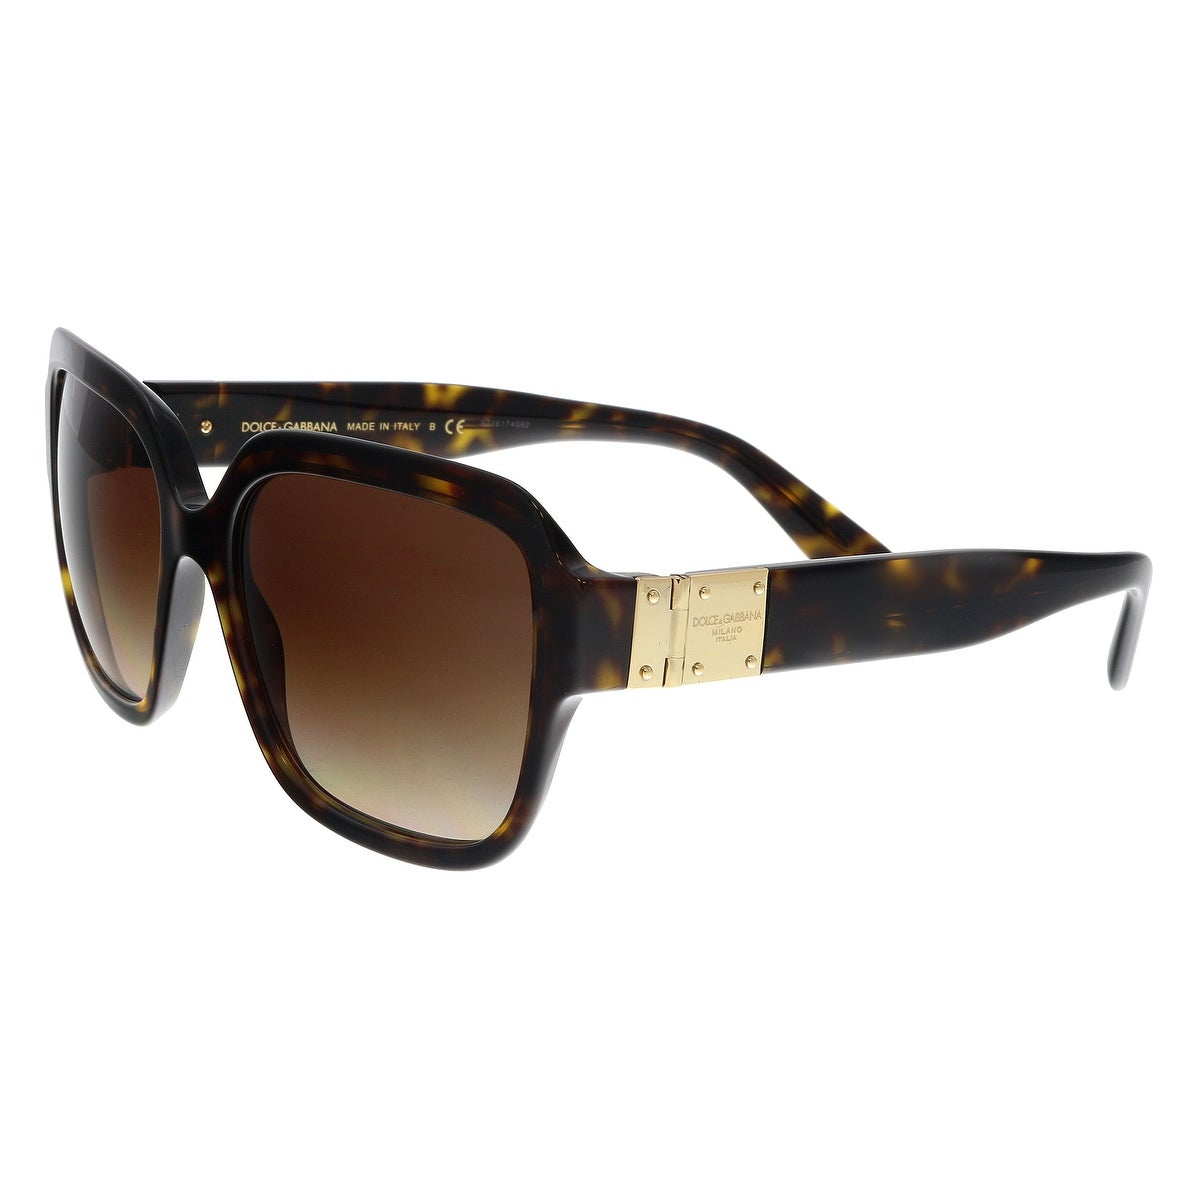 aac3b3001 Dolce & Gabbana Sunglasses | Shop our Best Clothing & Shoes Deals Online at  Overstock